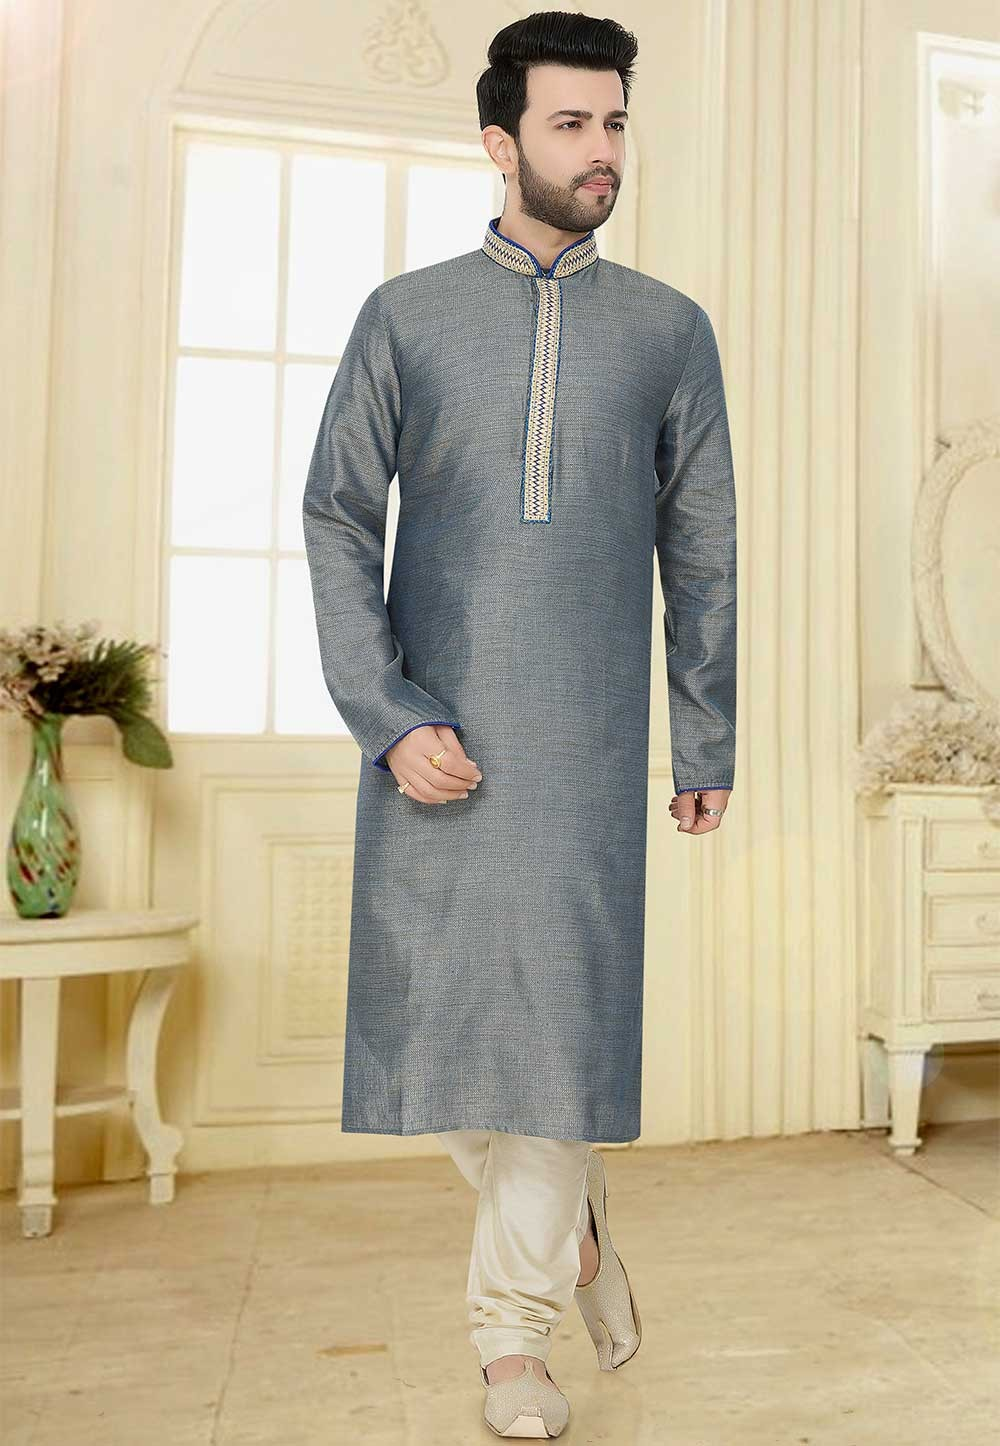 Plain: Buy Designer Kurta Pajama Online in Grey Colour